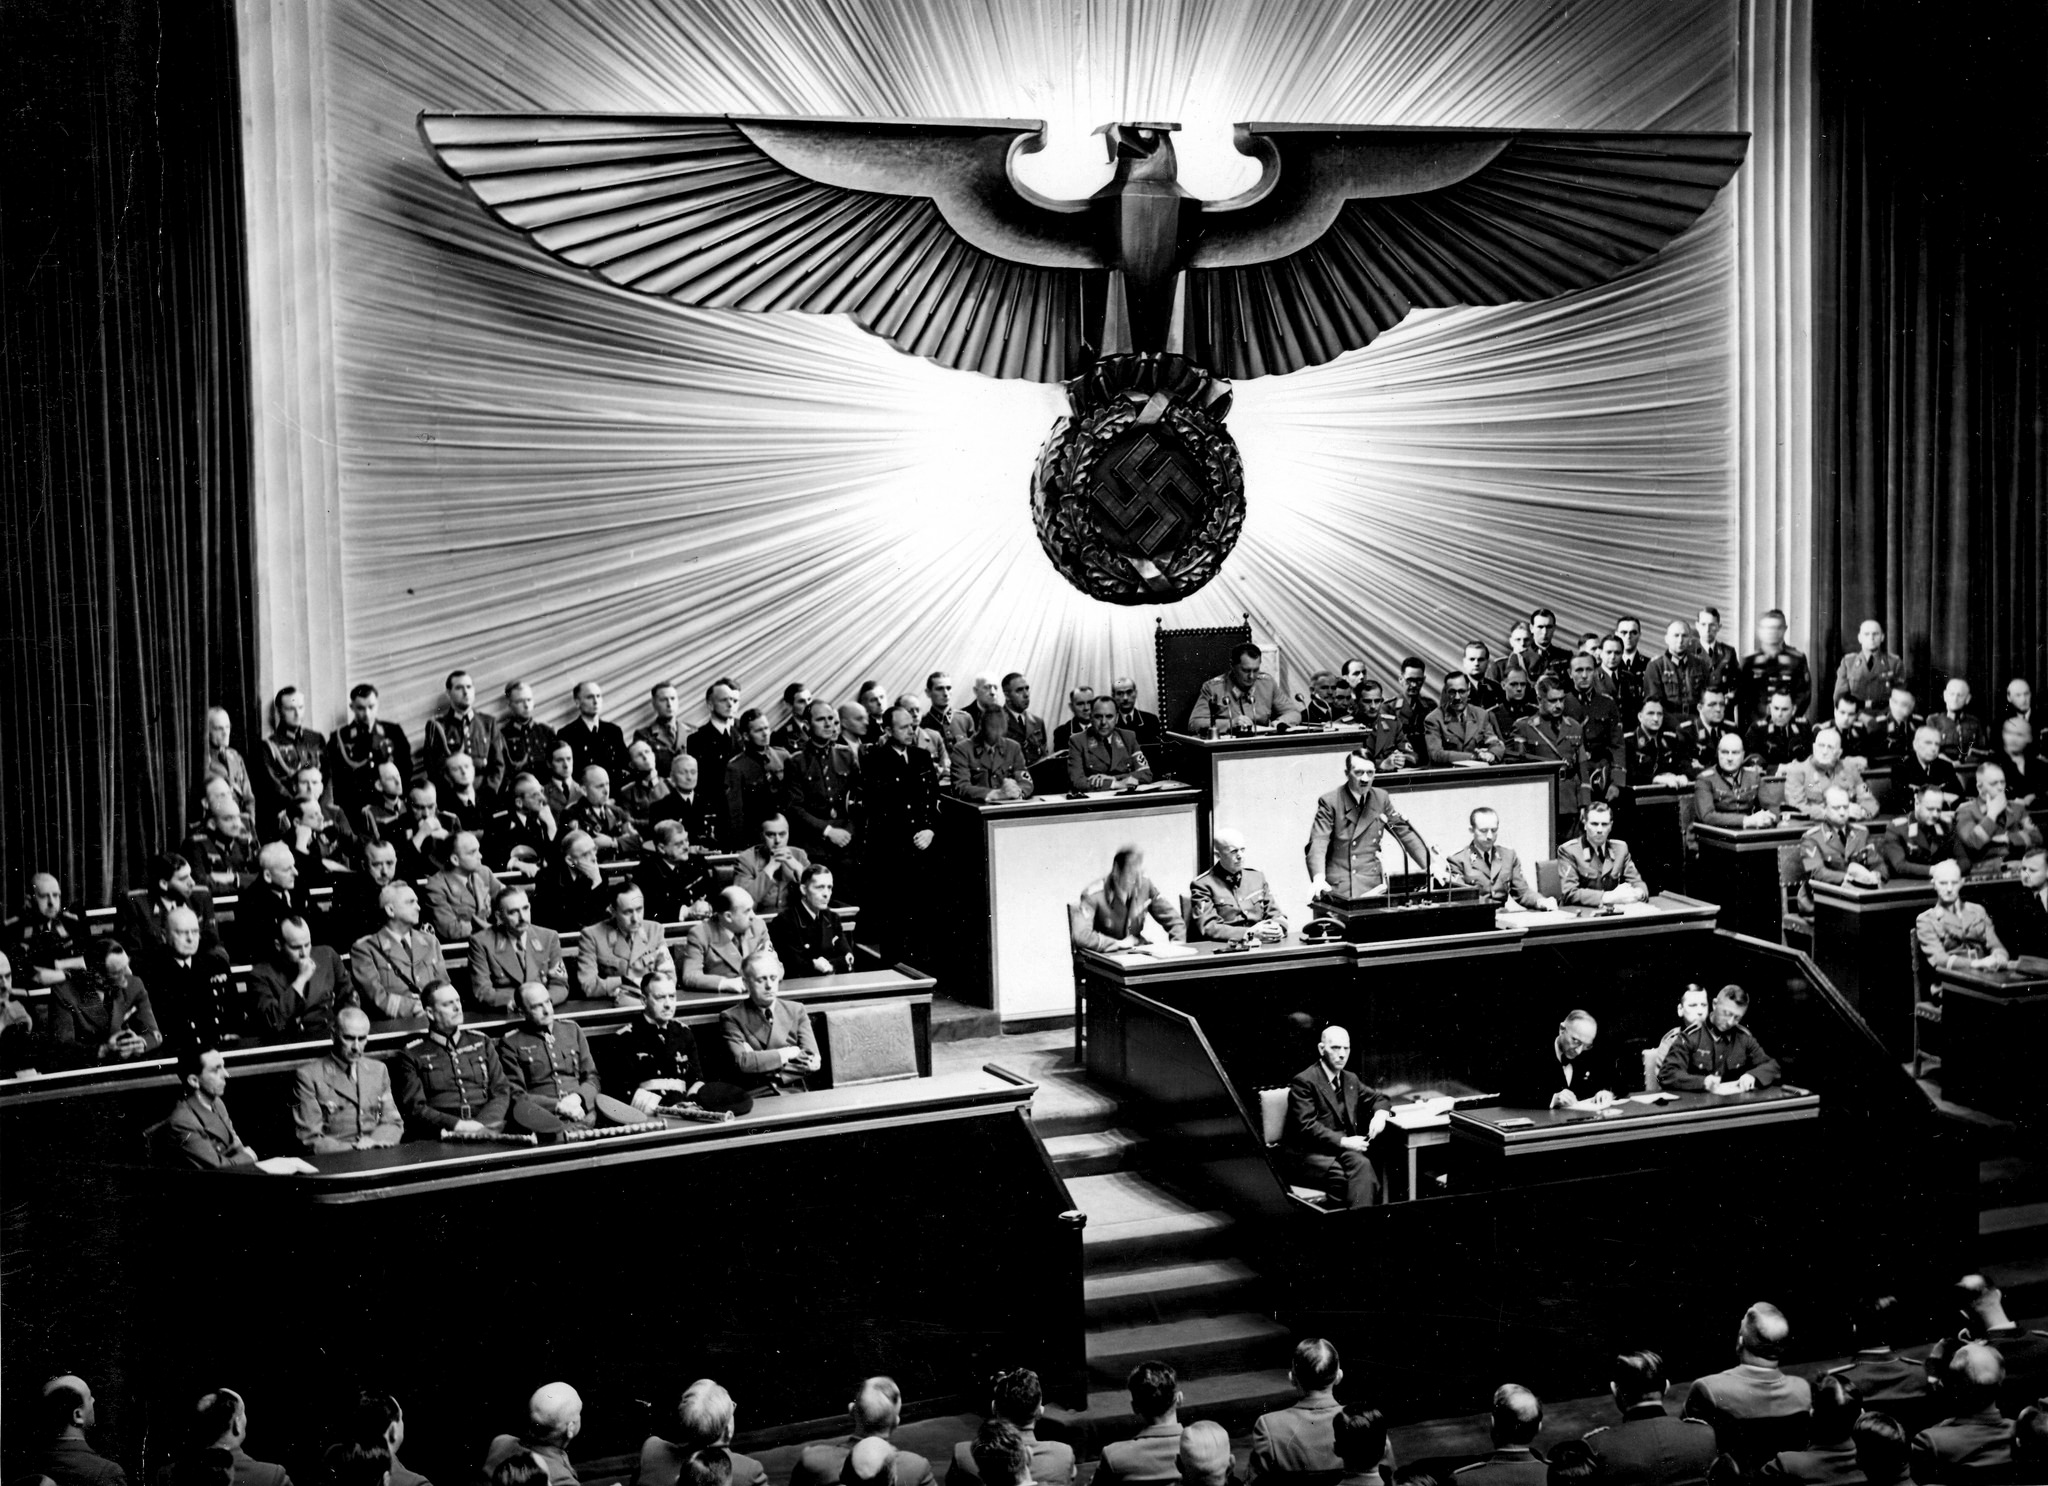 Hitler during his speech to the Reichstag attacking American President Franklin D. Roosevelt, 11 December 1941